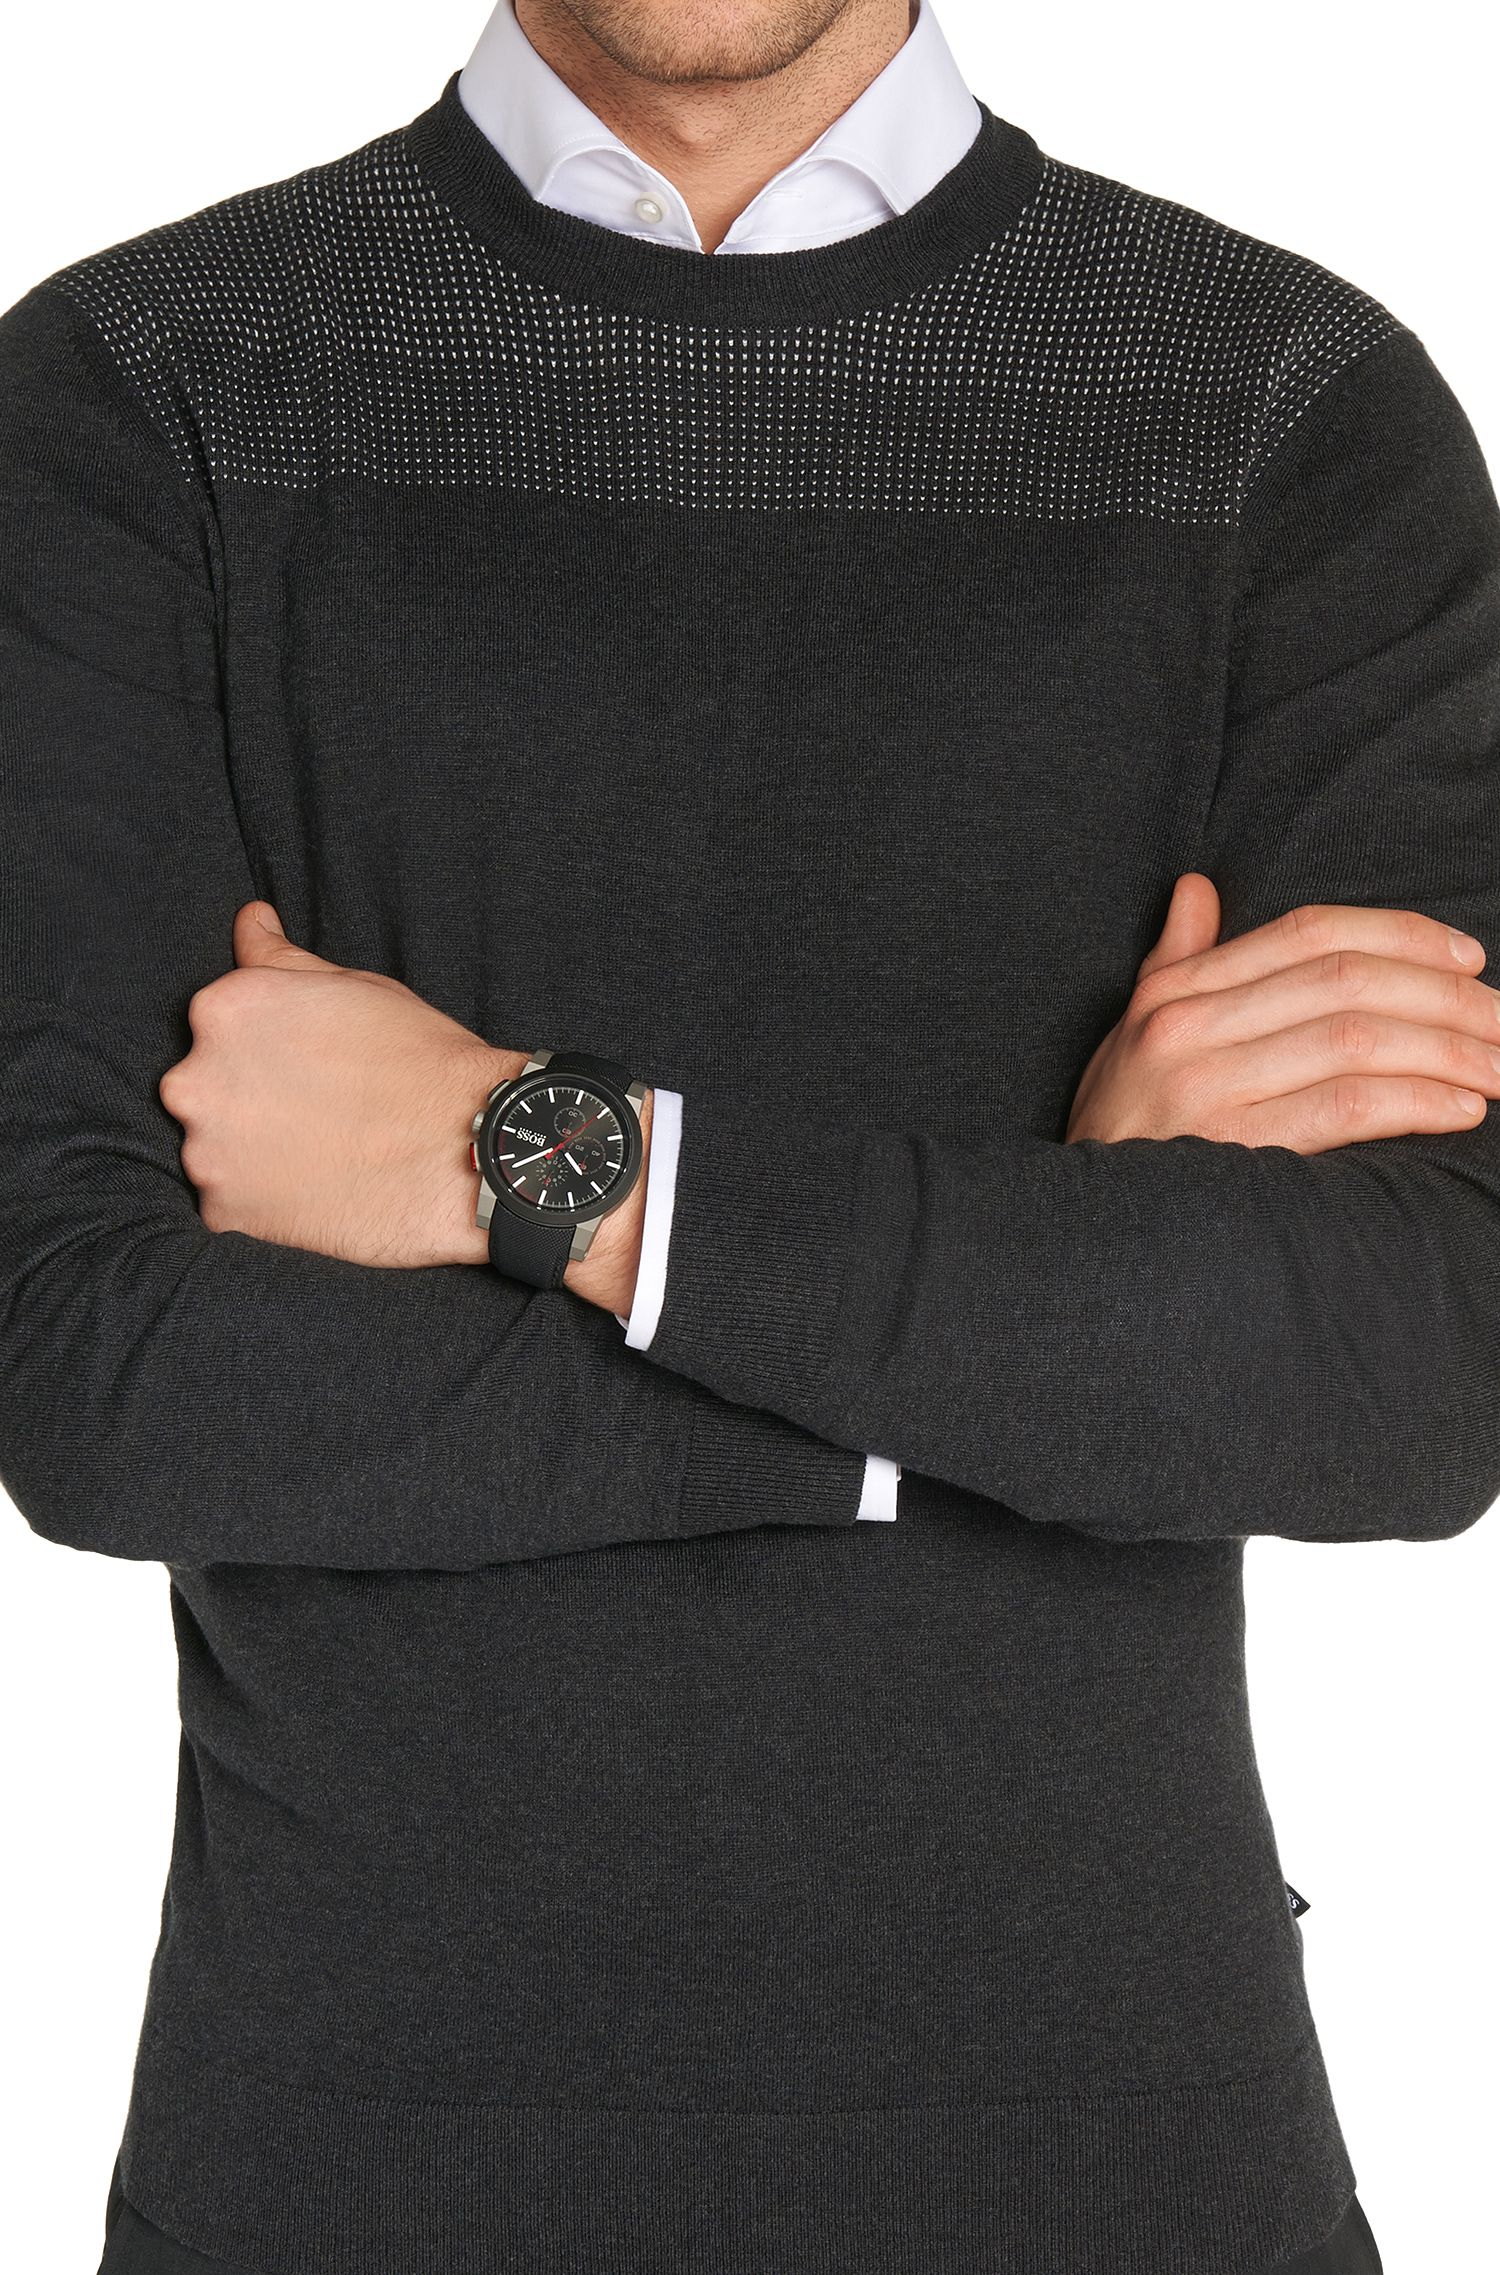 '1512979' | Chronograph Black Nylon Canvas Strap Watch, Assorted-Pre-Pack